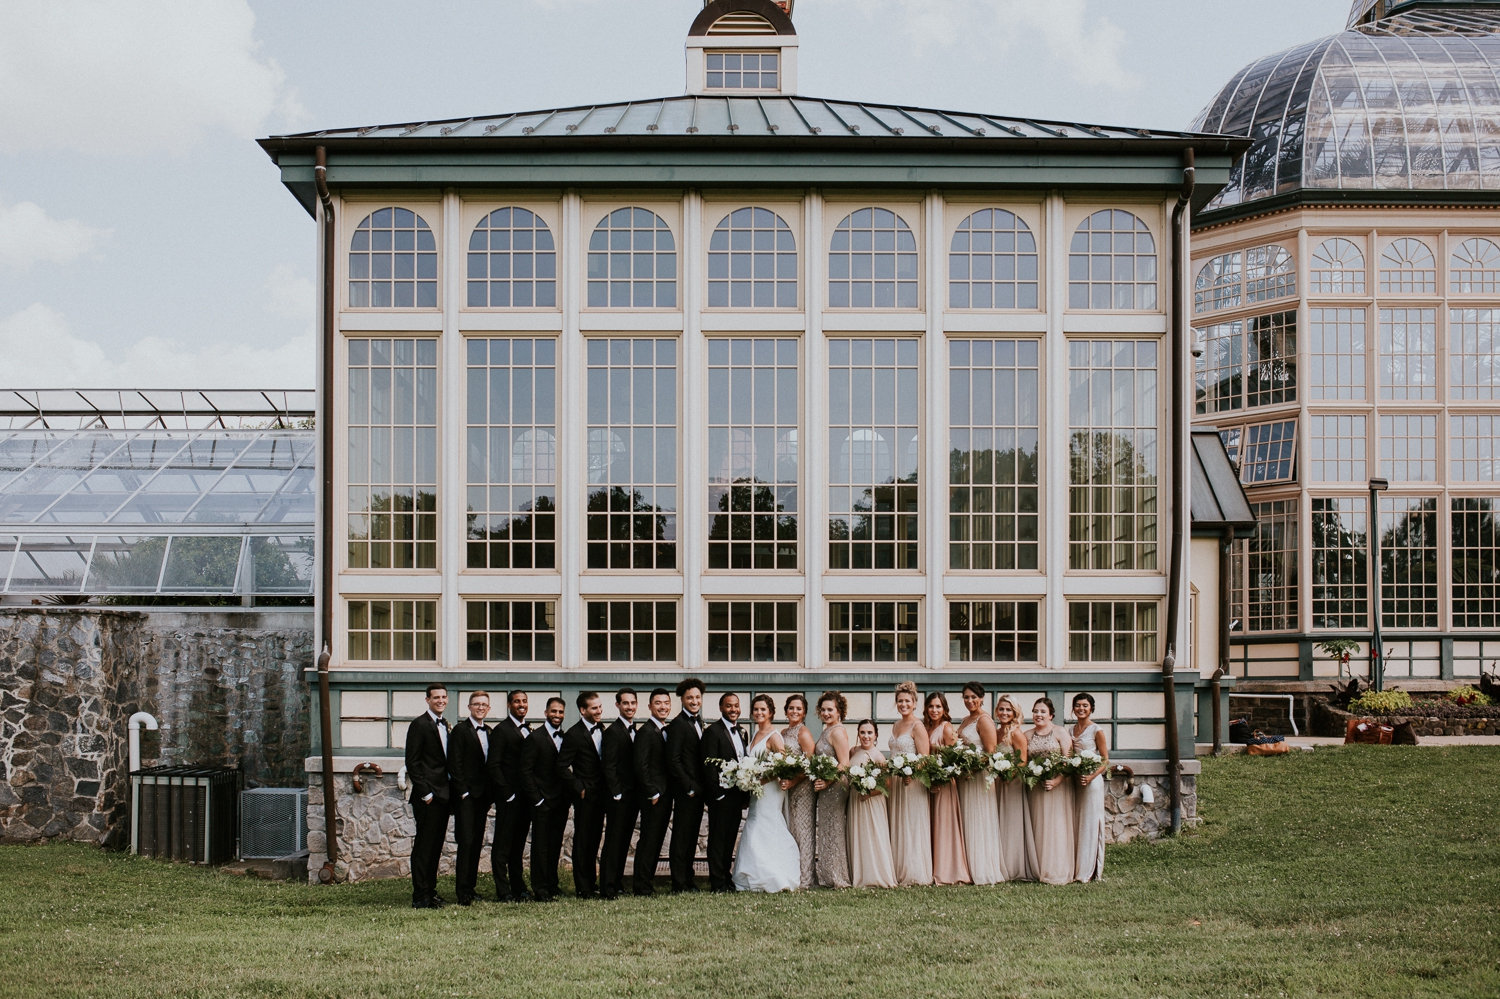 baltimore-maryland-rawlings-conservatory-wedding-portaits-photography 46.jpg